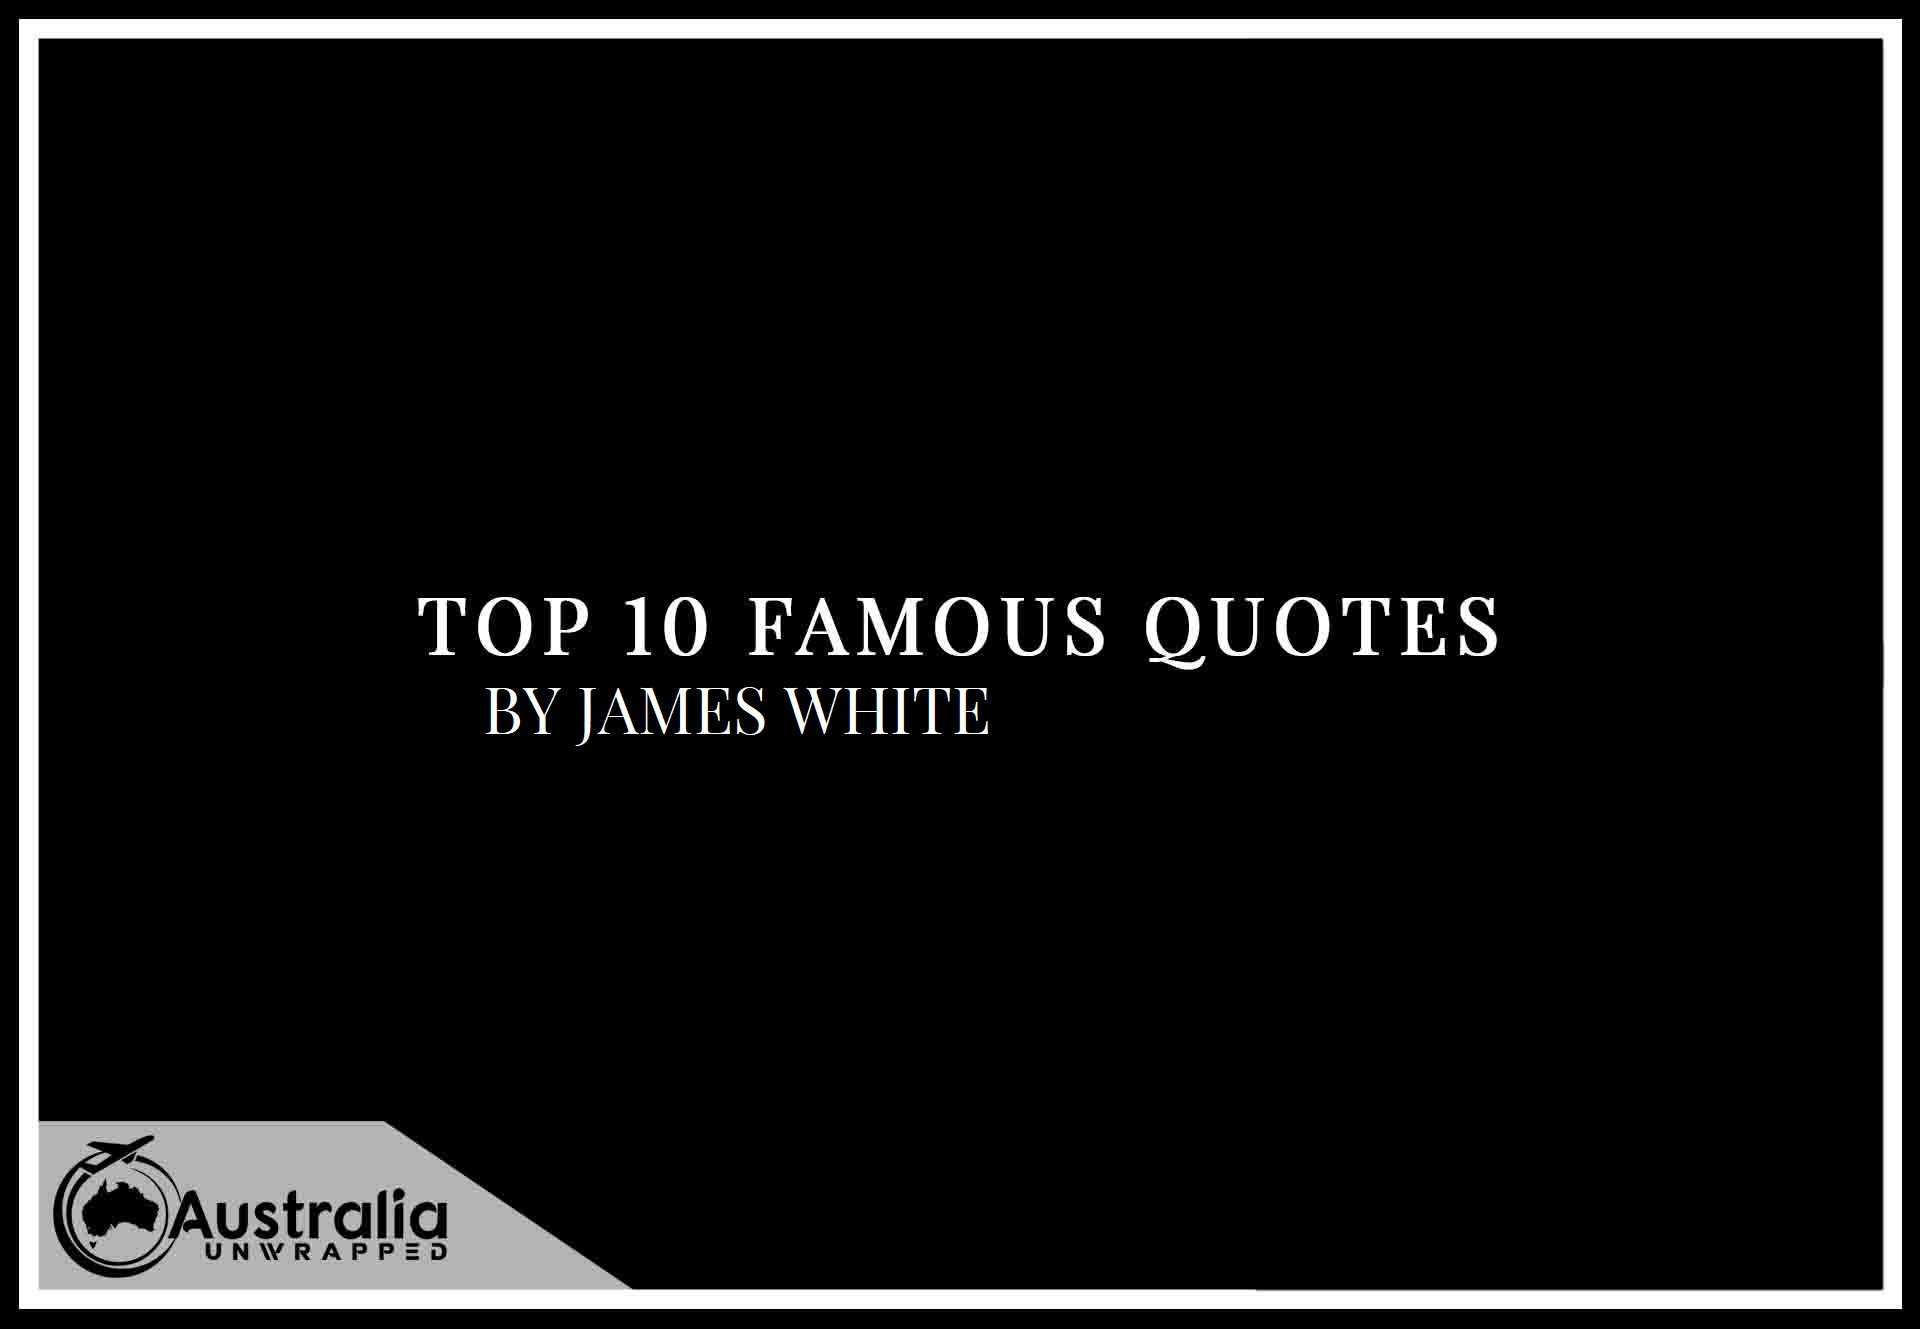 Top 10 Famous Quotes by Author James White